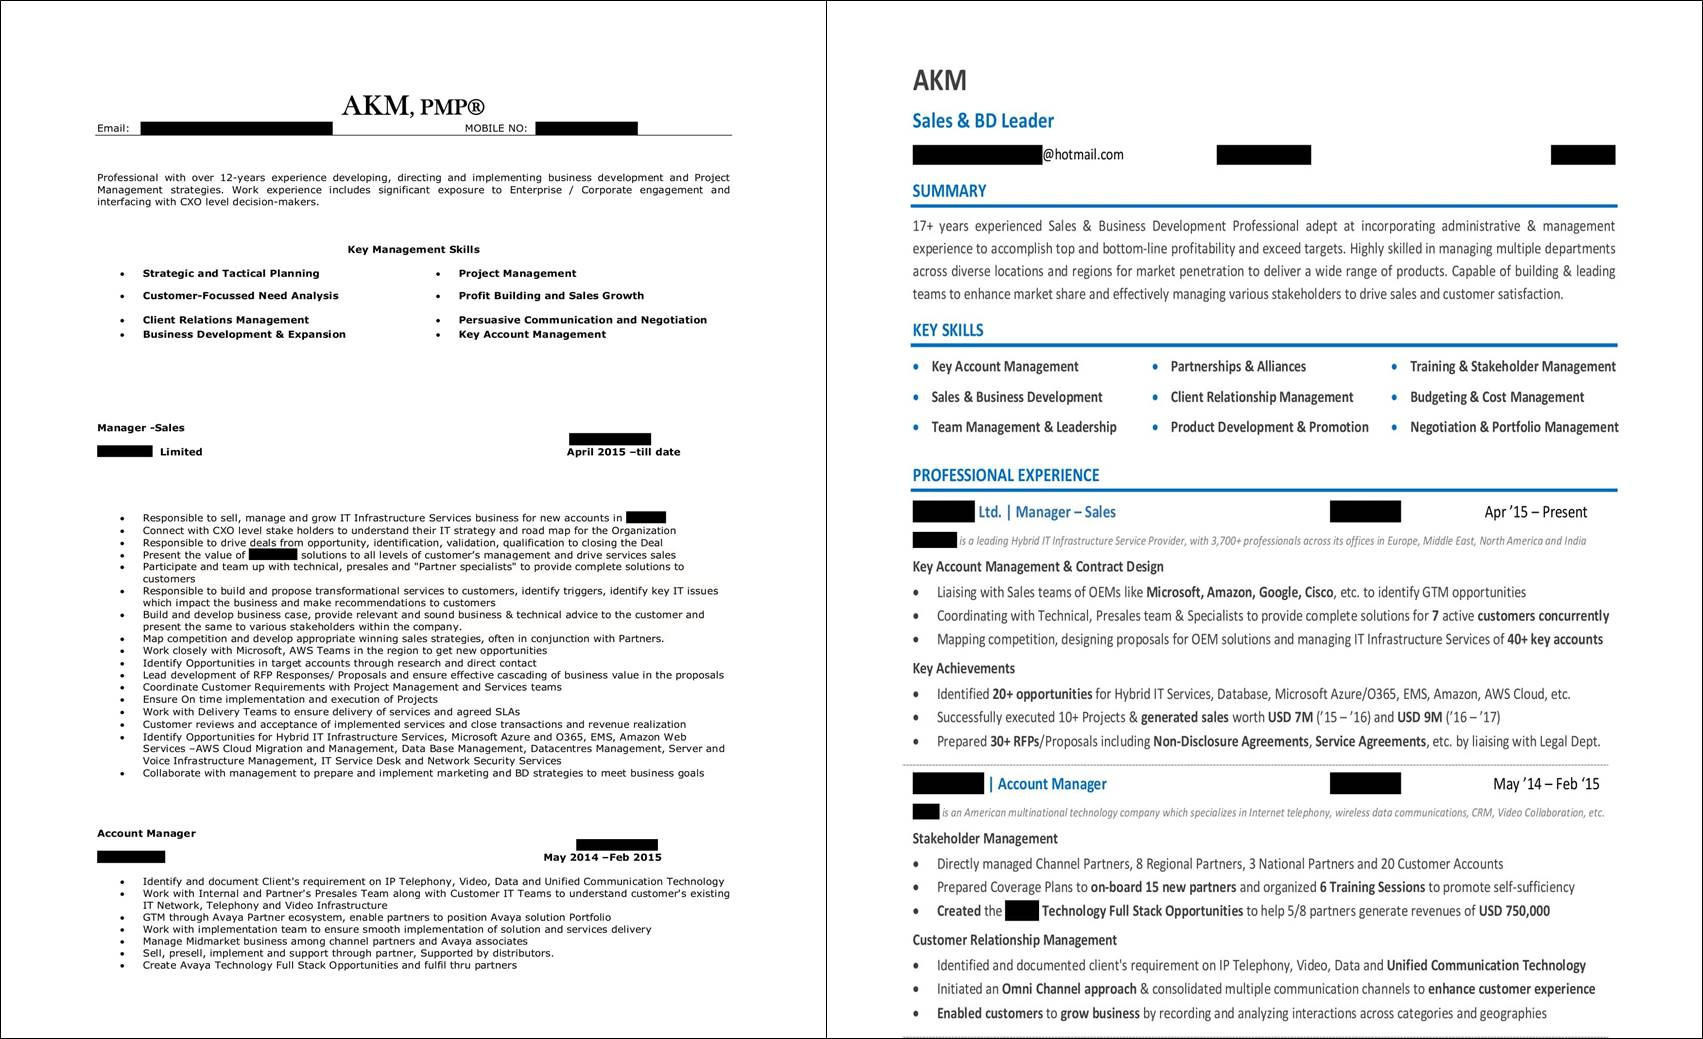 Sample Resumes Of A Sales Professional. 1. Structure Of A Sales Resume